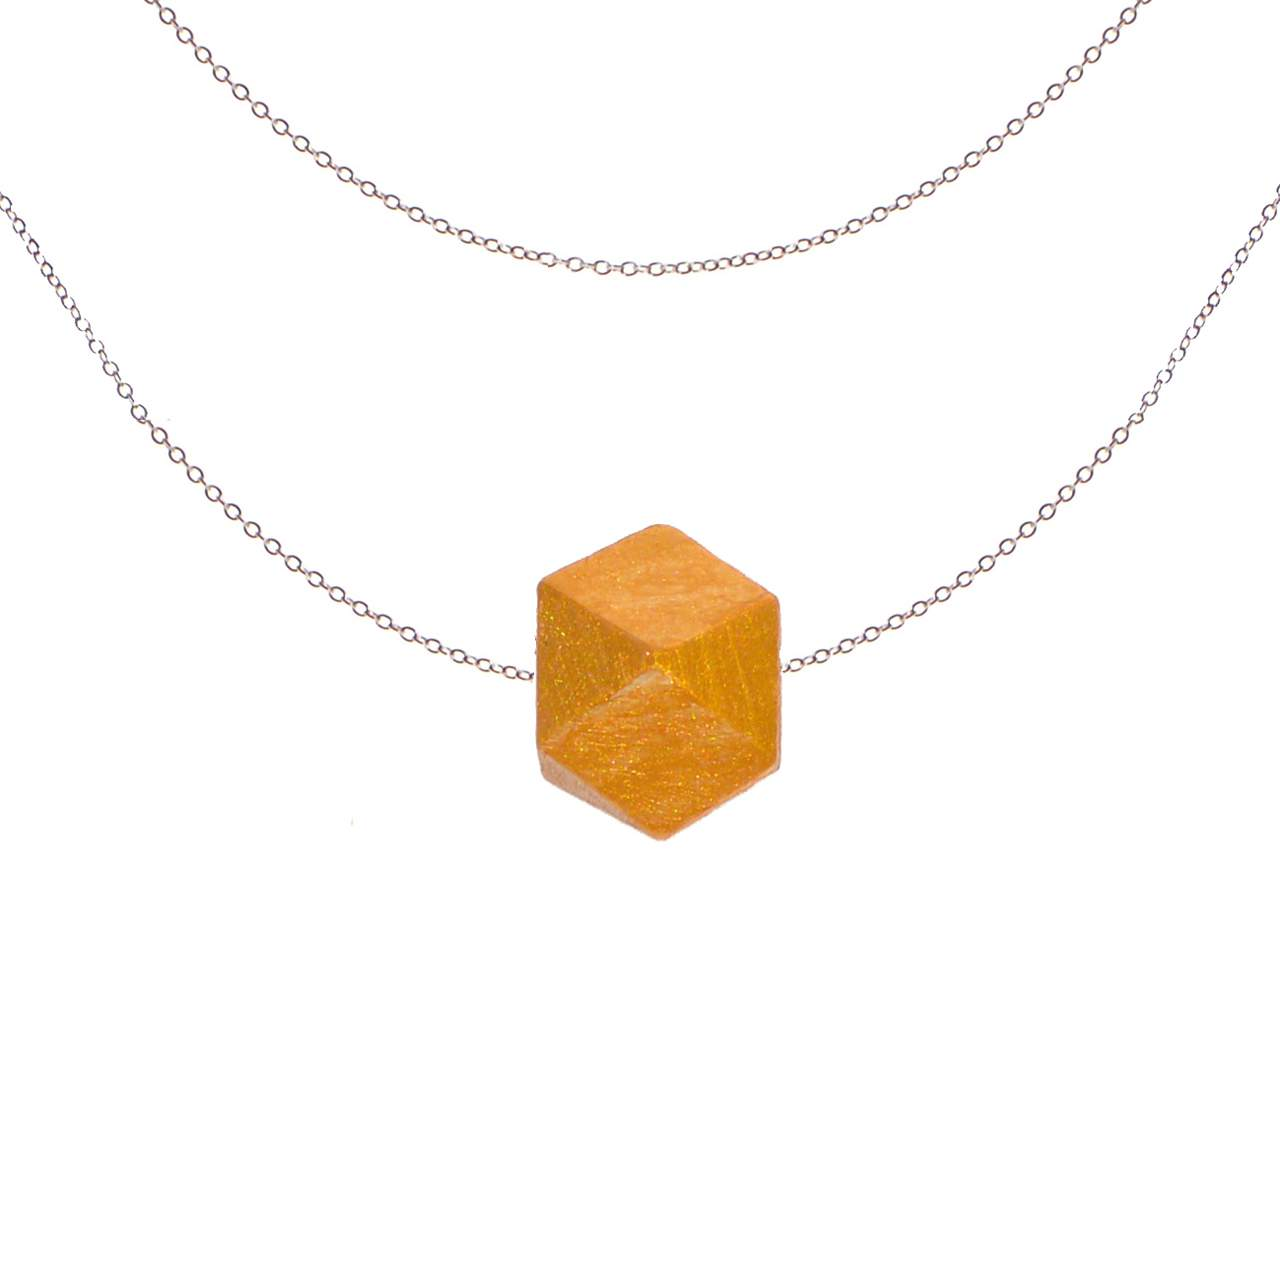 Mon Bijou - Necklace Night Out 1 gold | The Design Gift Shop